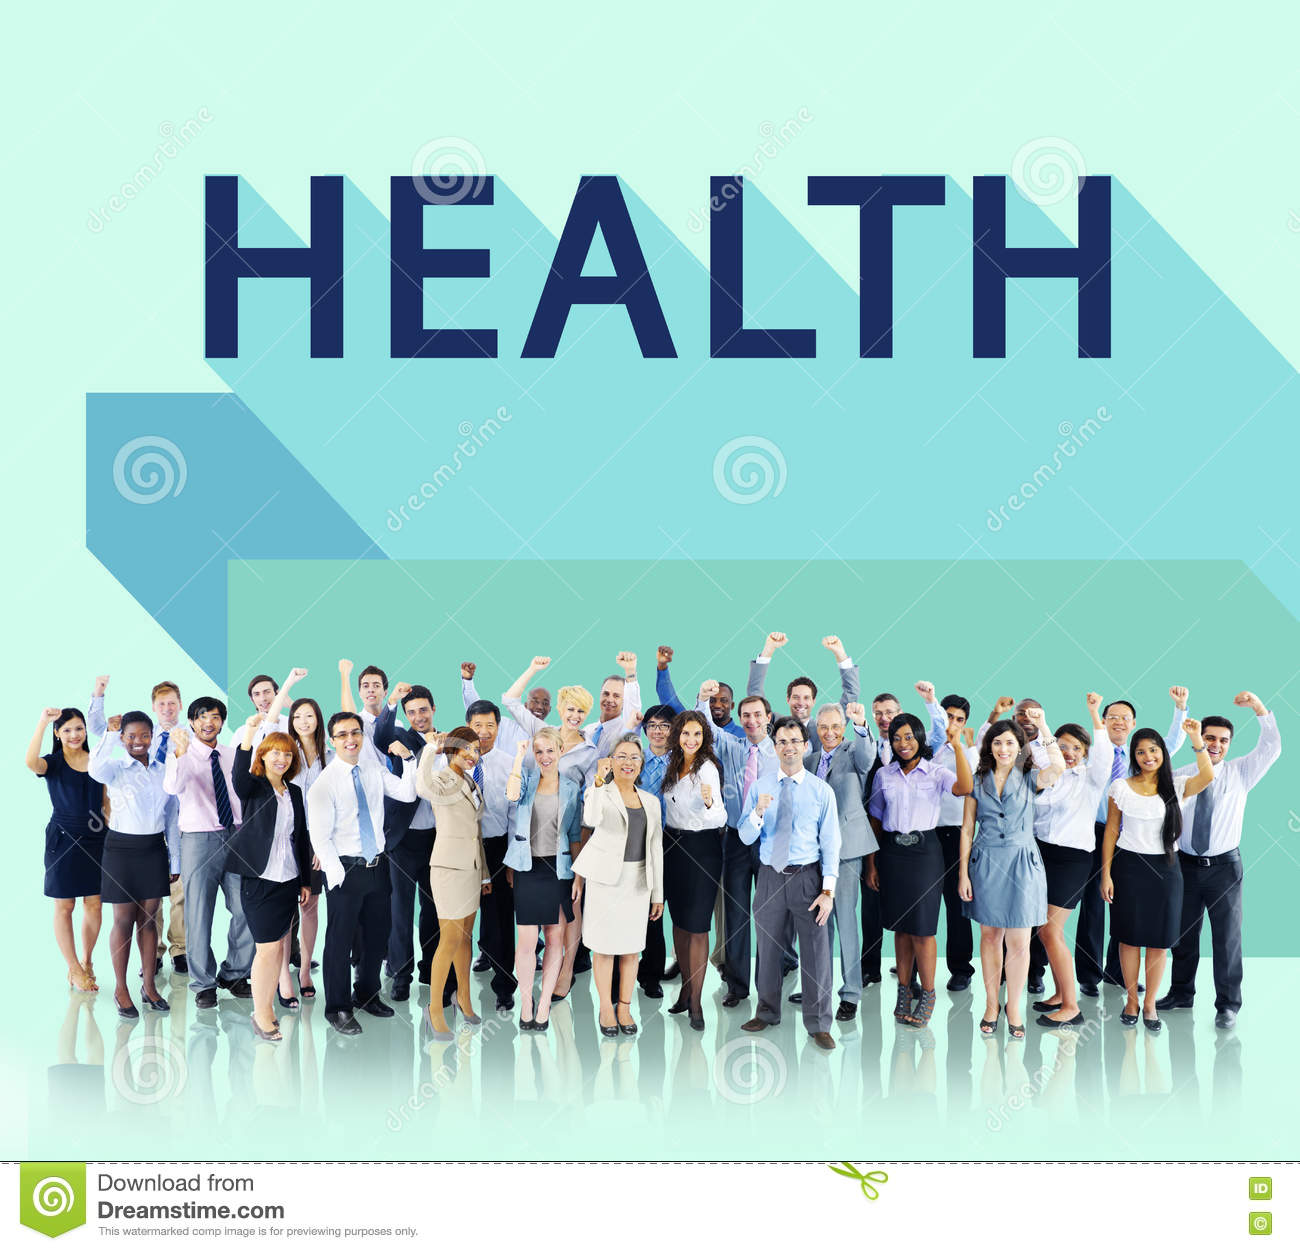 Health Healthcare Physical Treatment Fitness Concept